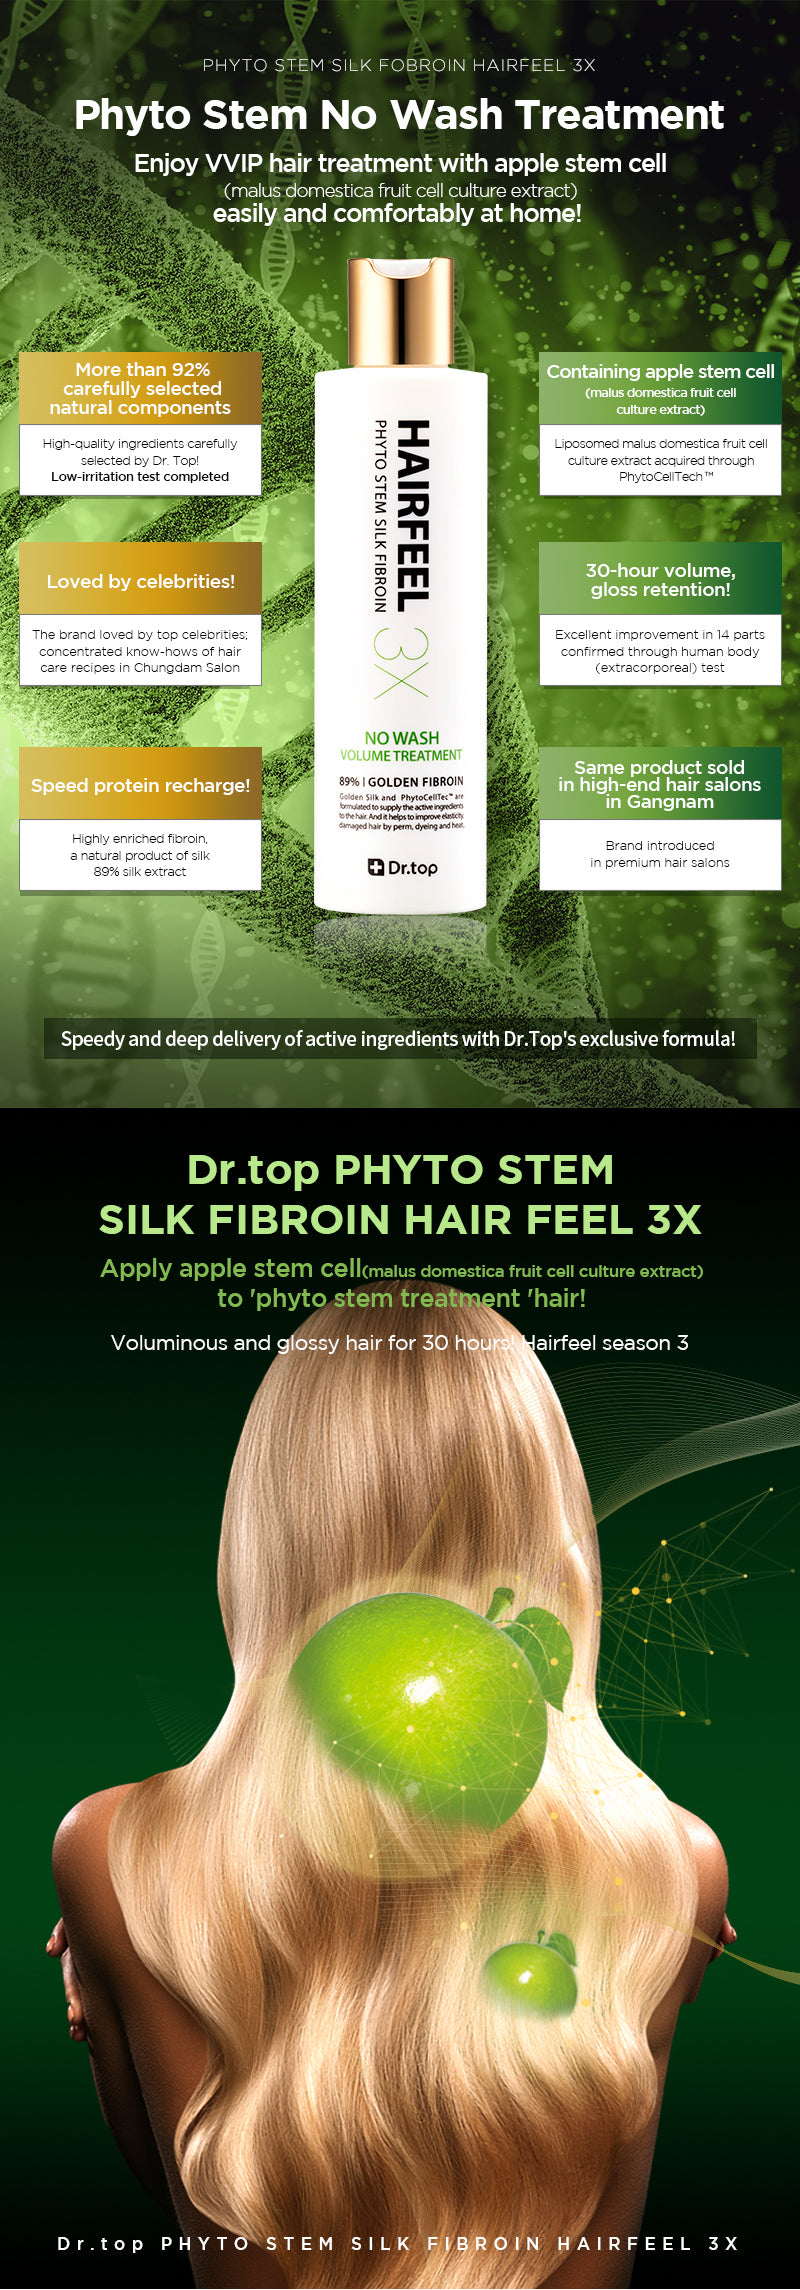 DR TOP PHYTO STERM GOLDEN SILK FIBROIN HAIRFEEL 3X